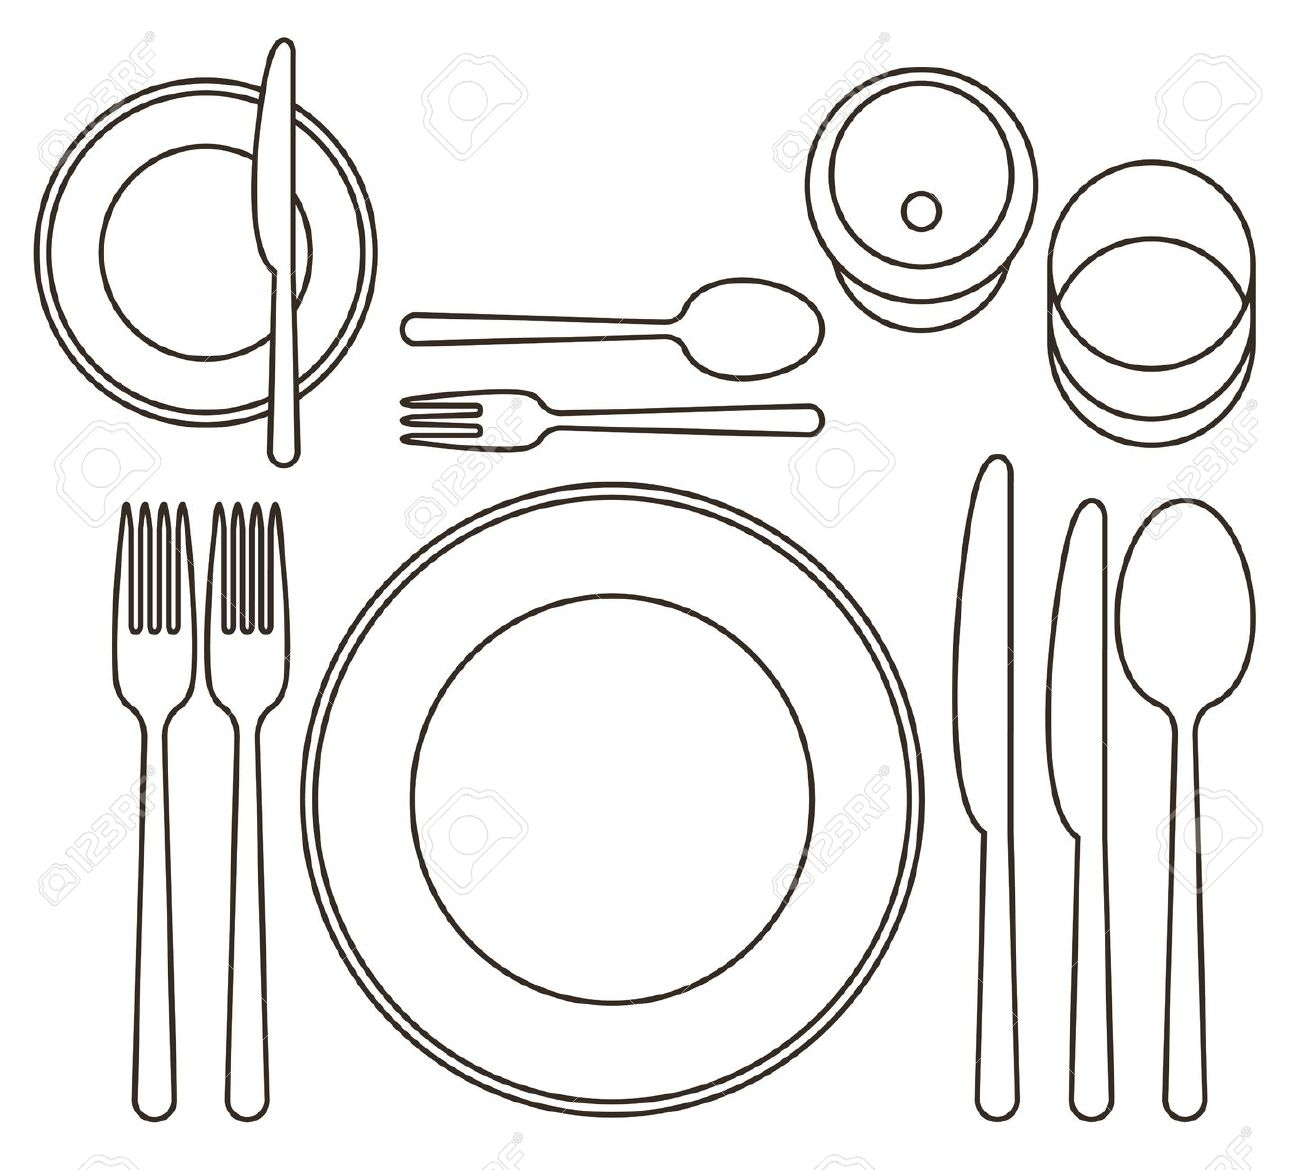 Tischgedeck Clipart Free Dinner Setting Cliparts Download Free Clip Art Free